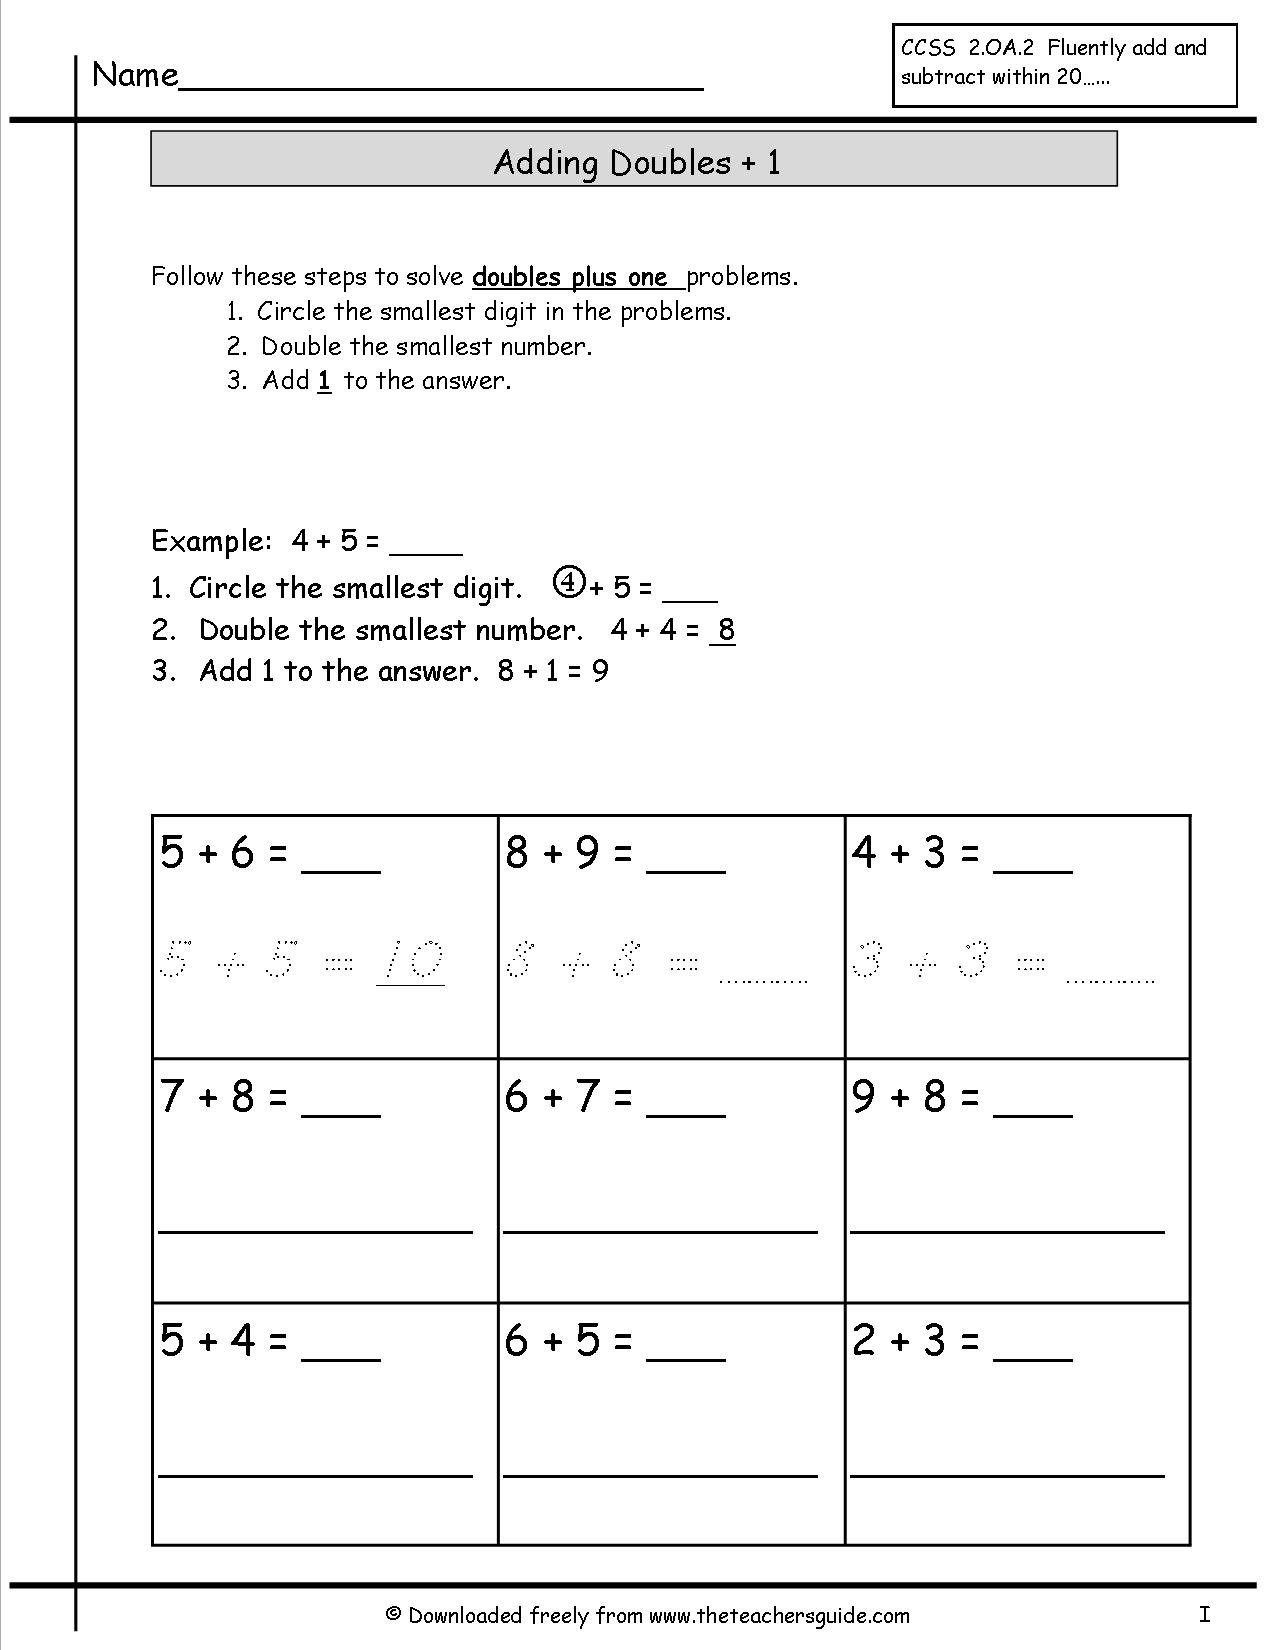 Single Digit Addition Worksheets From The Teachers Guide